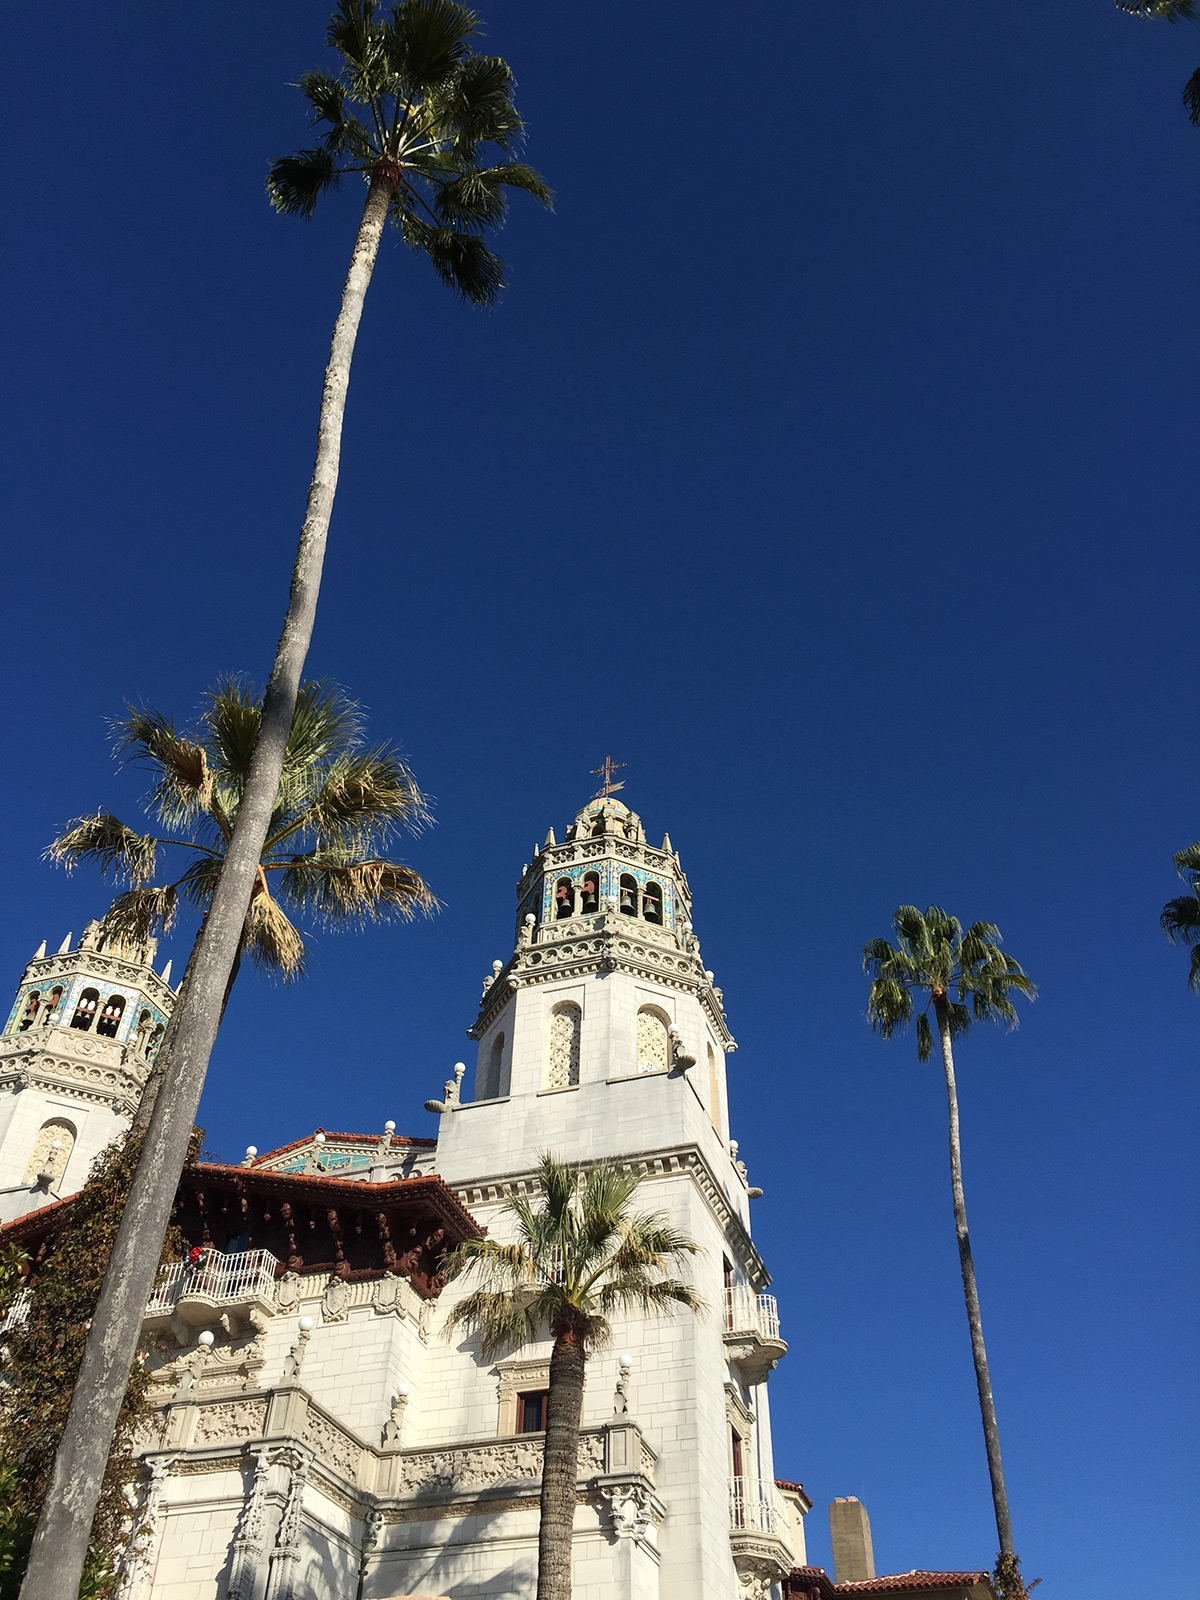 Tall, skinny palm trees stand outside the grand, white stone exterior of Heart Castle